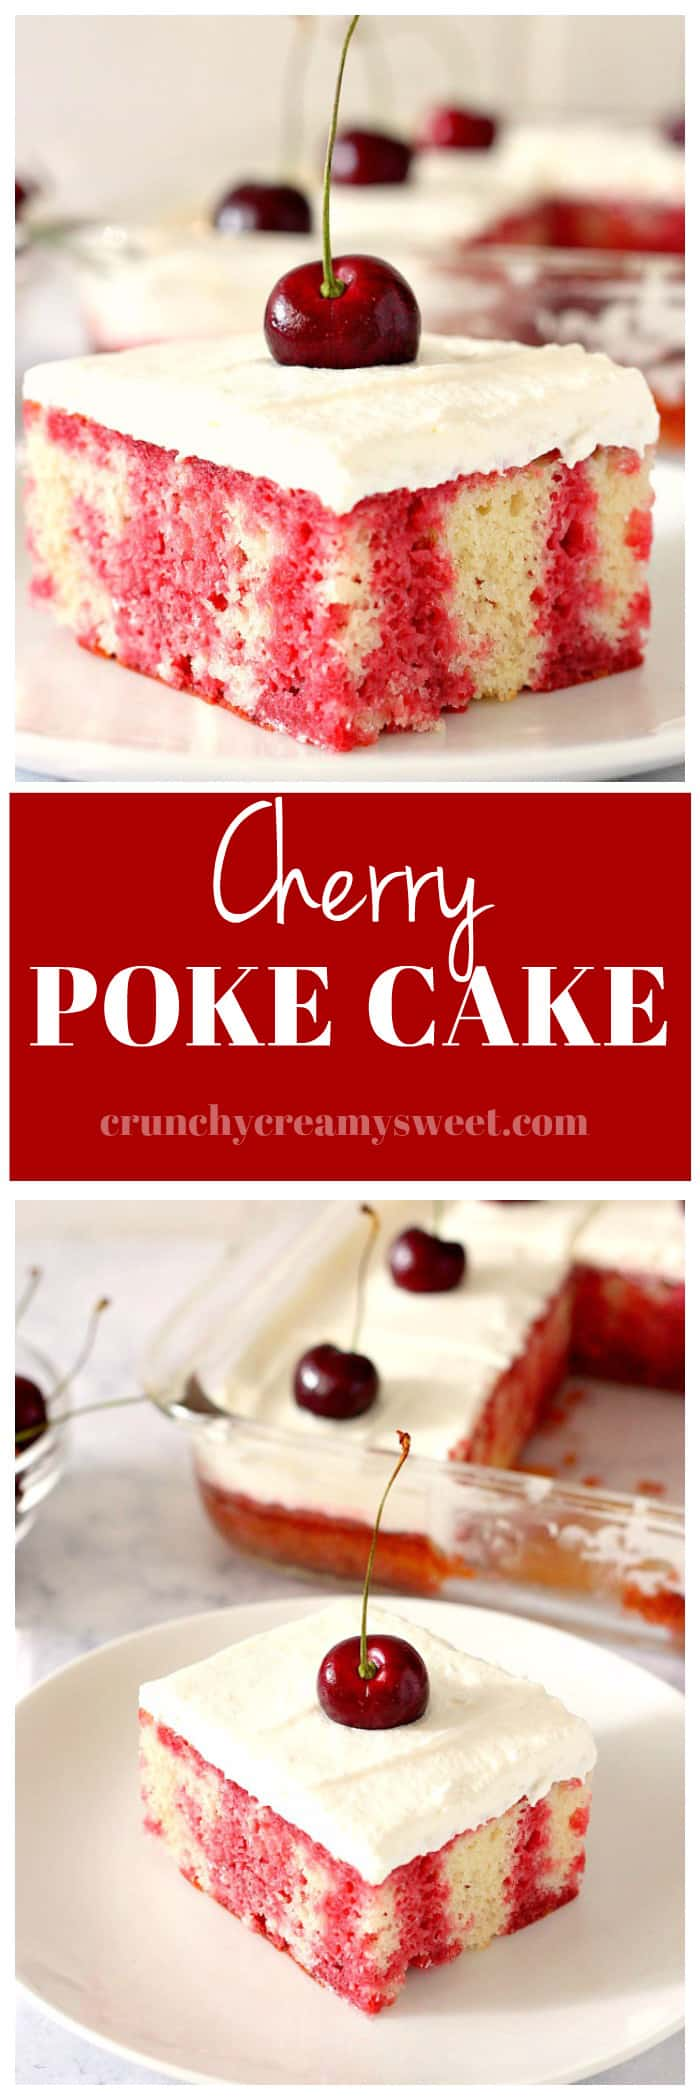 cherry poke cake recipe long Aa Cherry Poke Cake Recipe